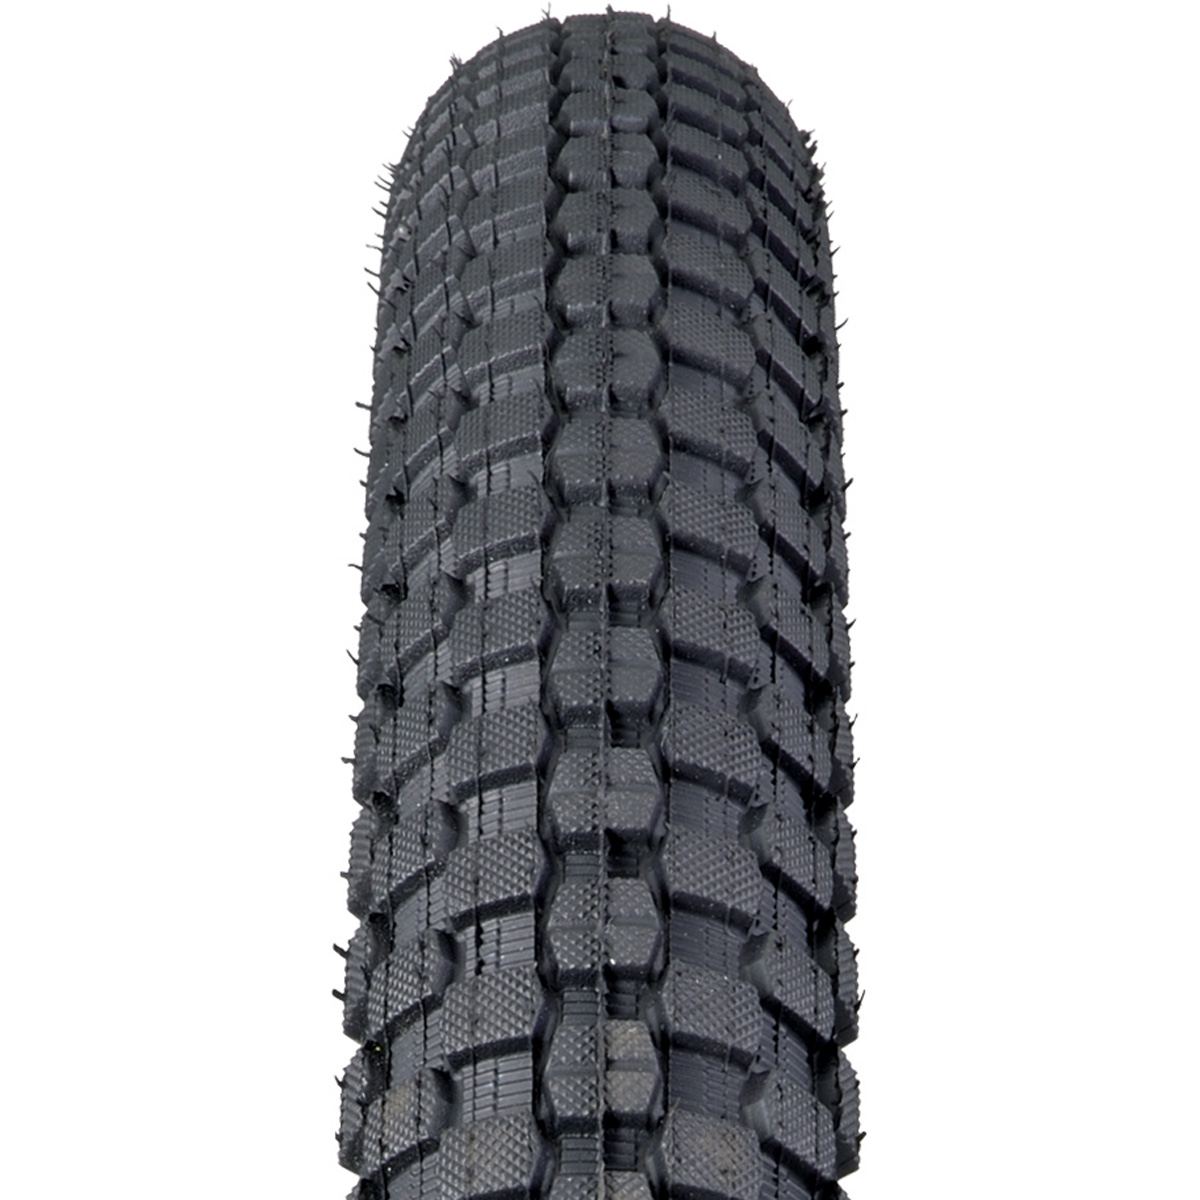 Kenda K-Rad K905 Wire Bead Mountain Bicycle Tire - 26 x 1.95